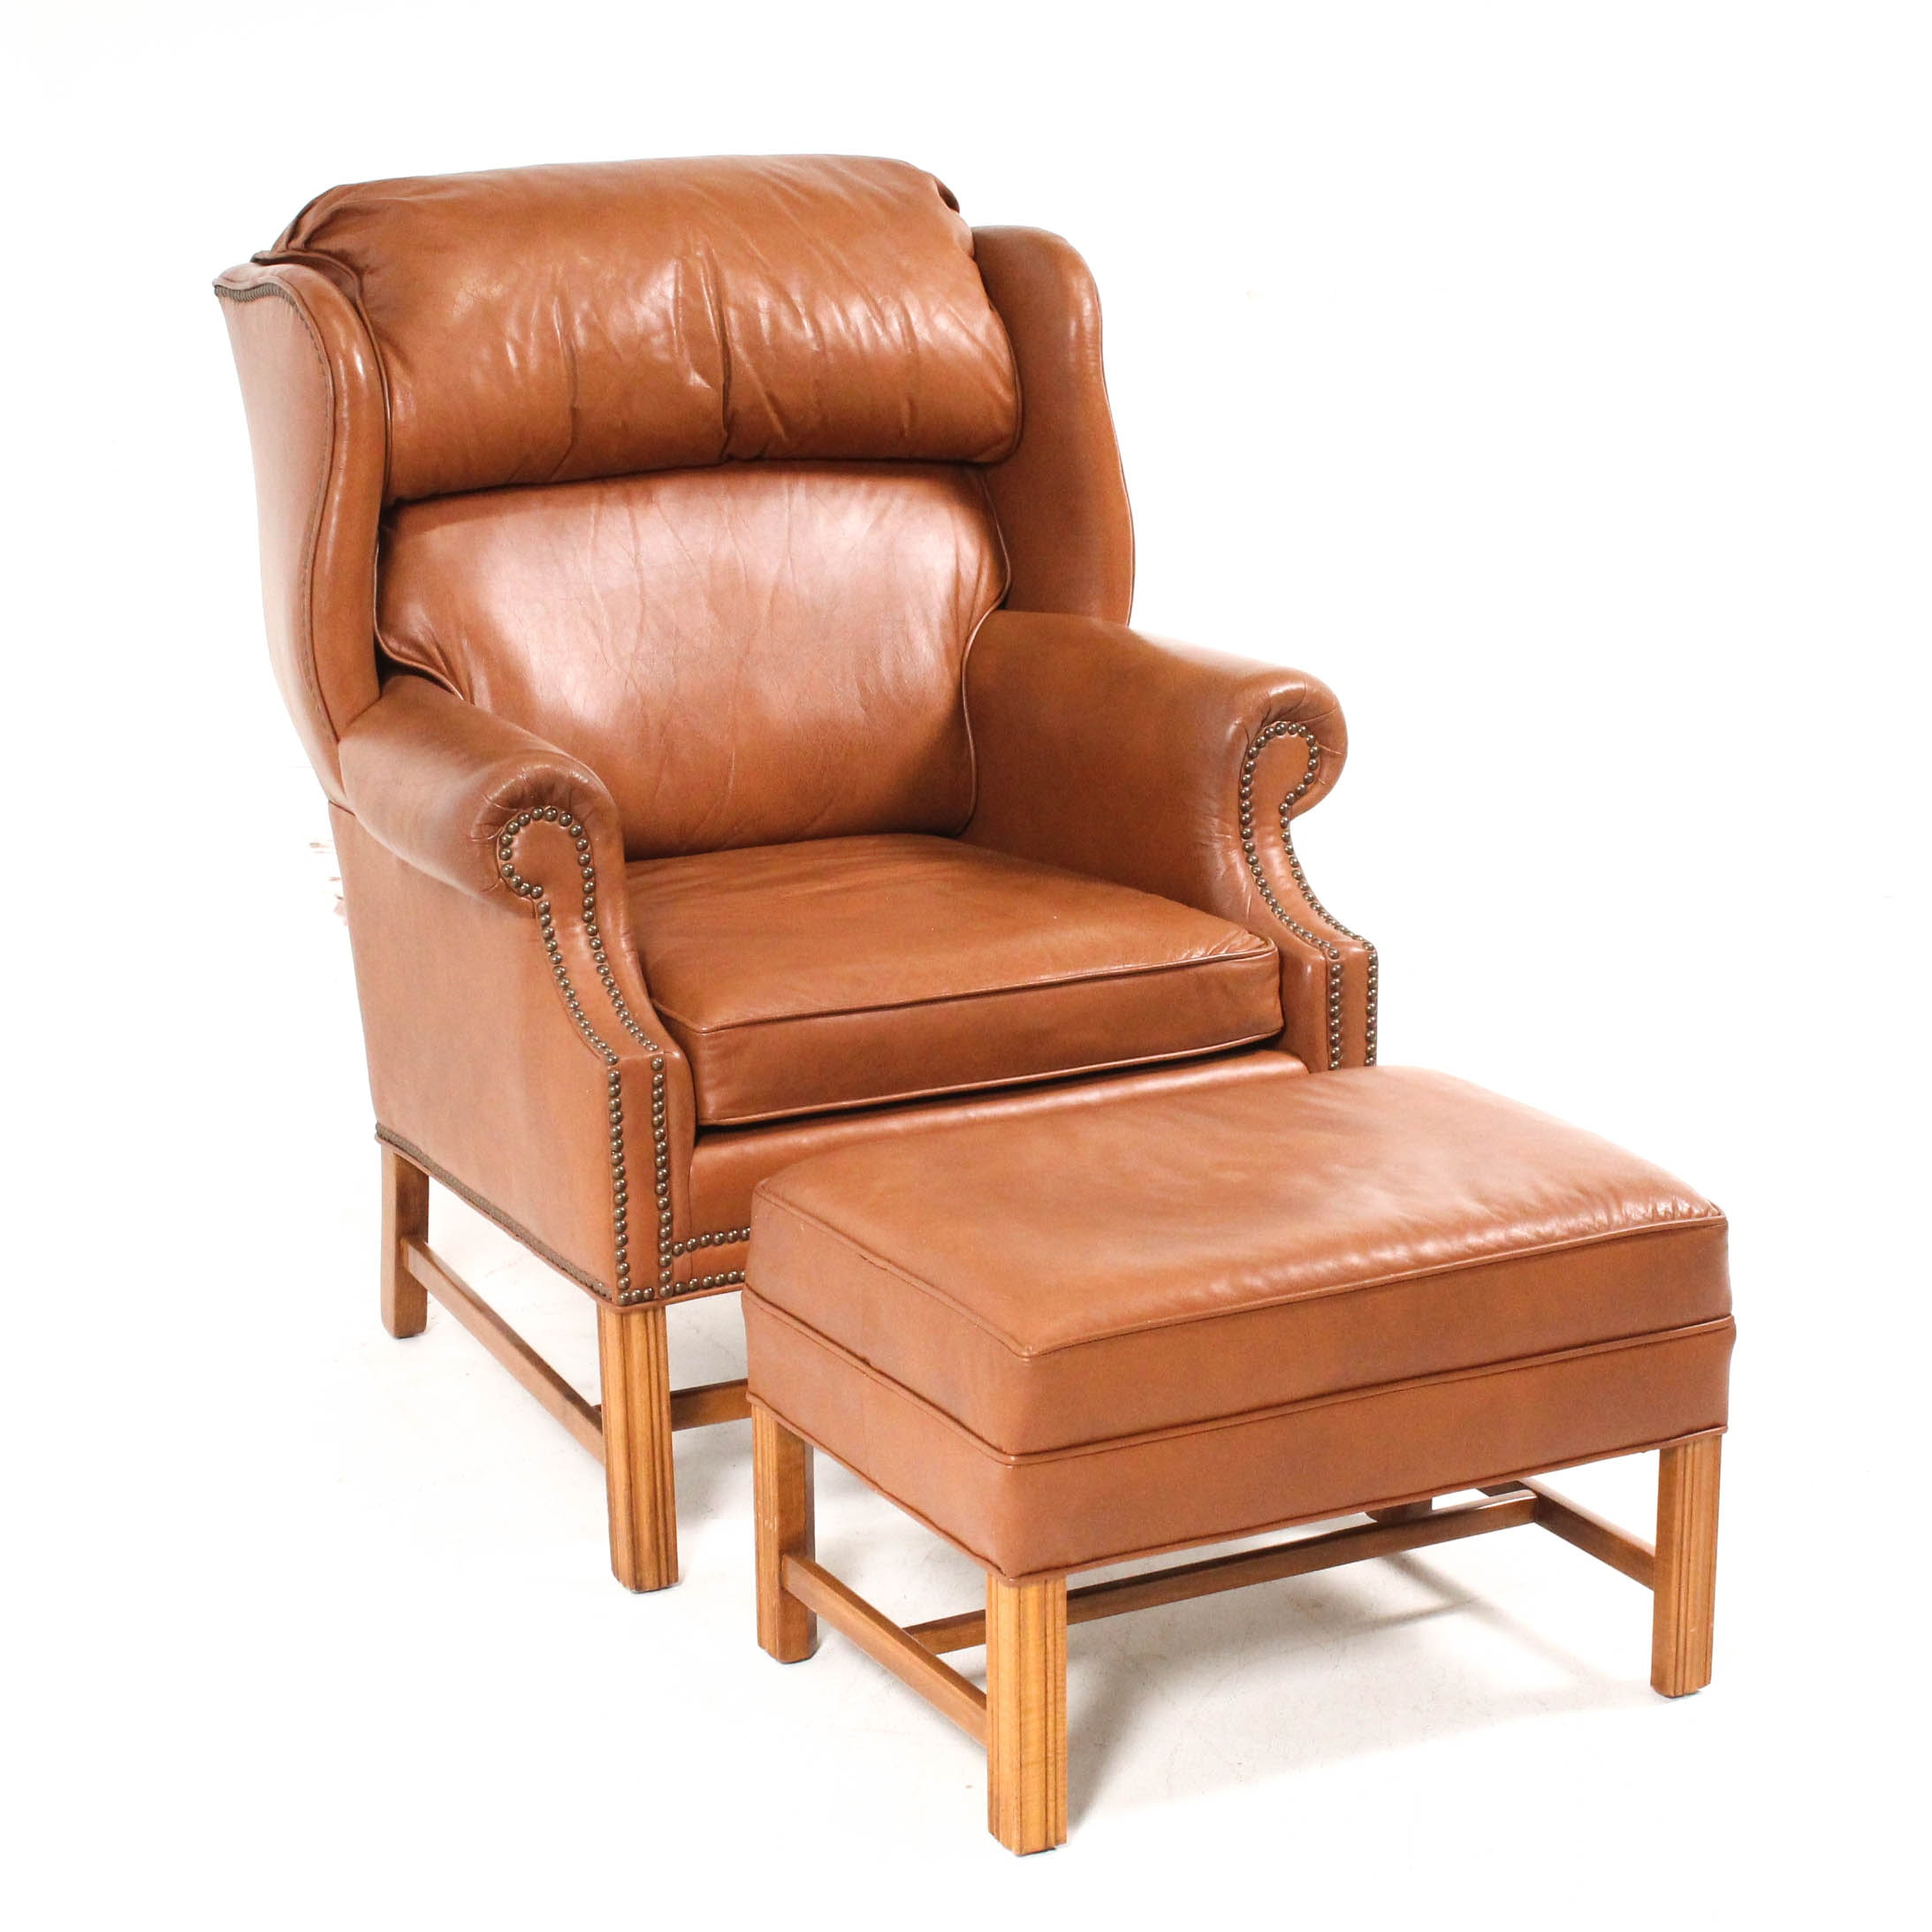 Ethan Allen Leather Arm Chair with Ottoman